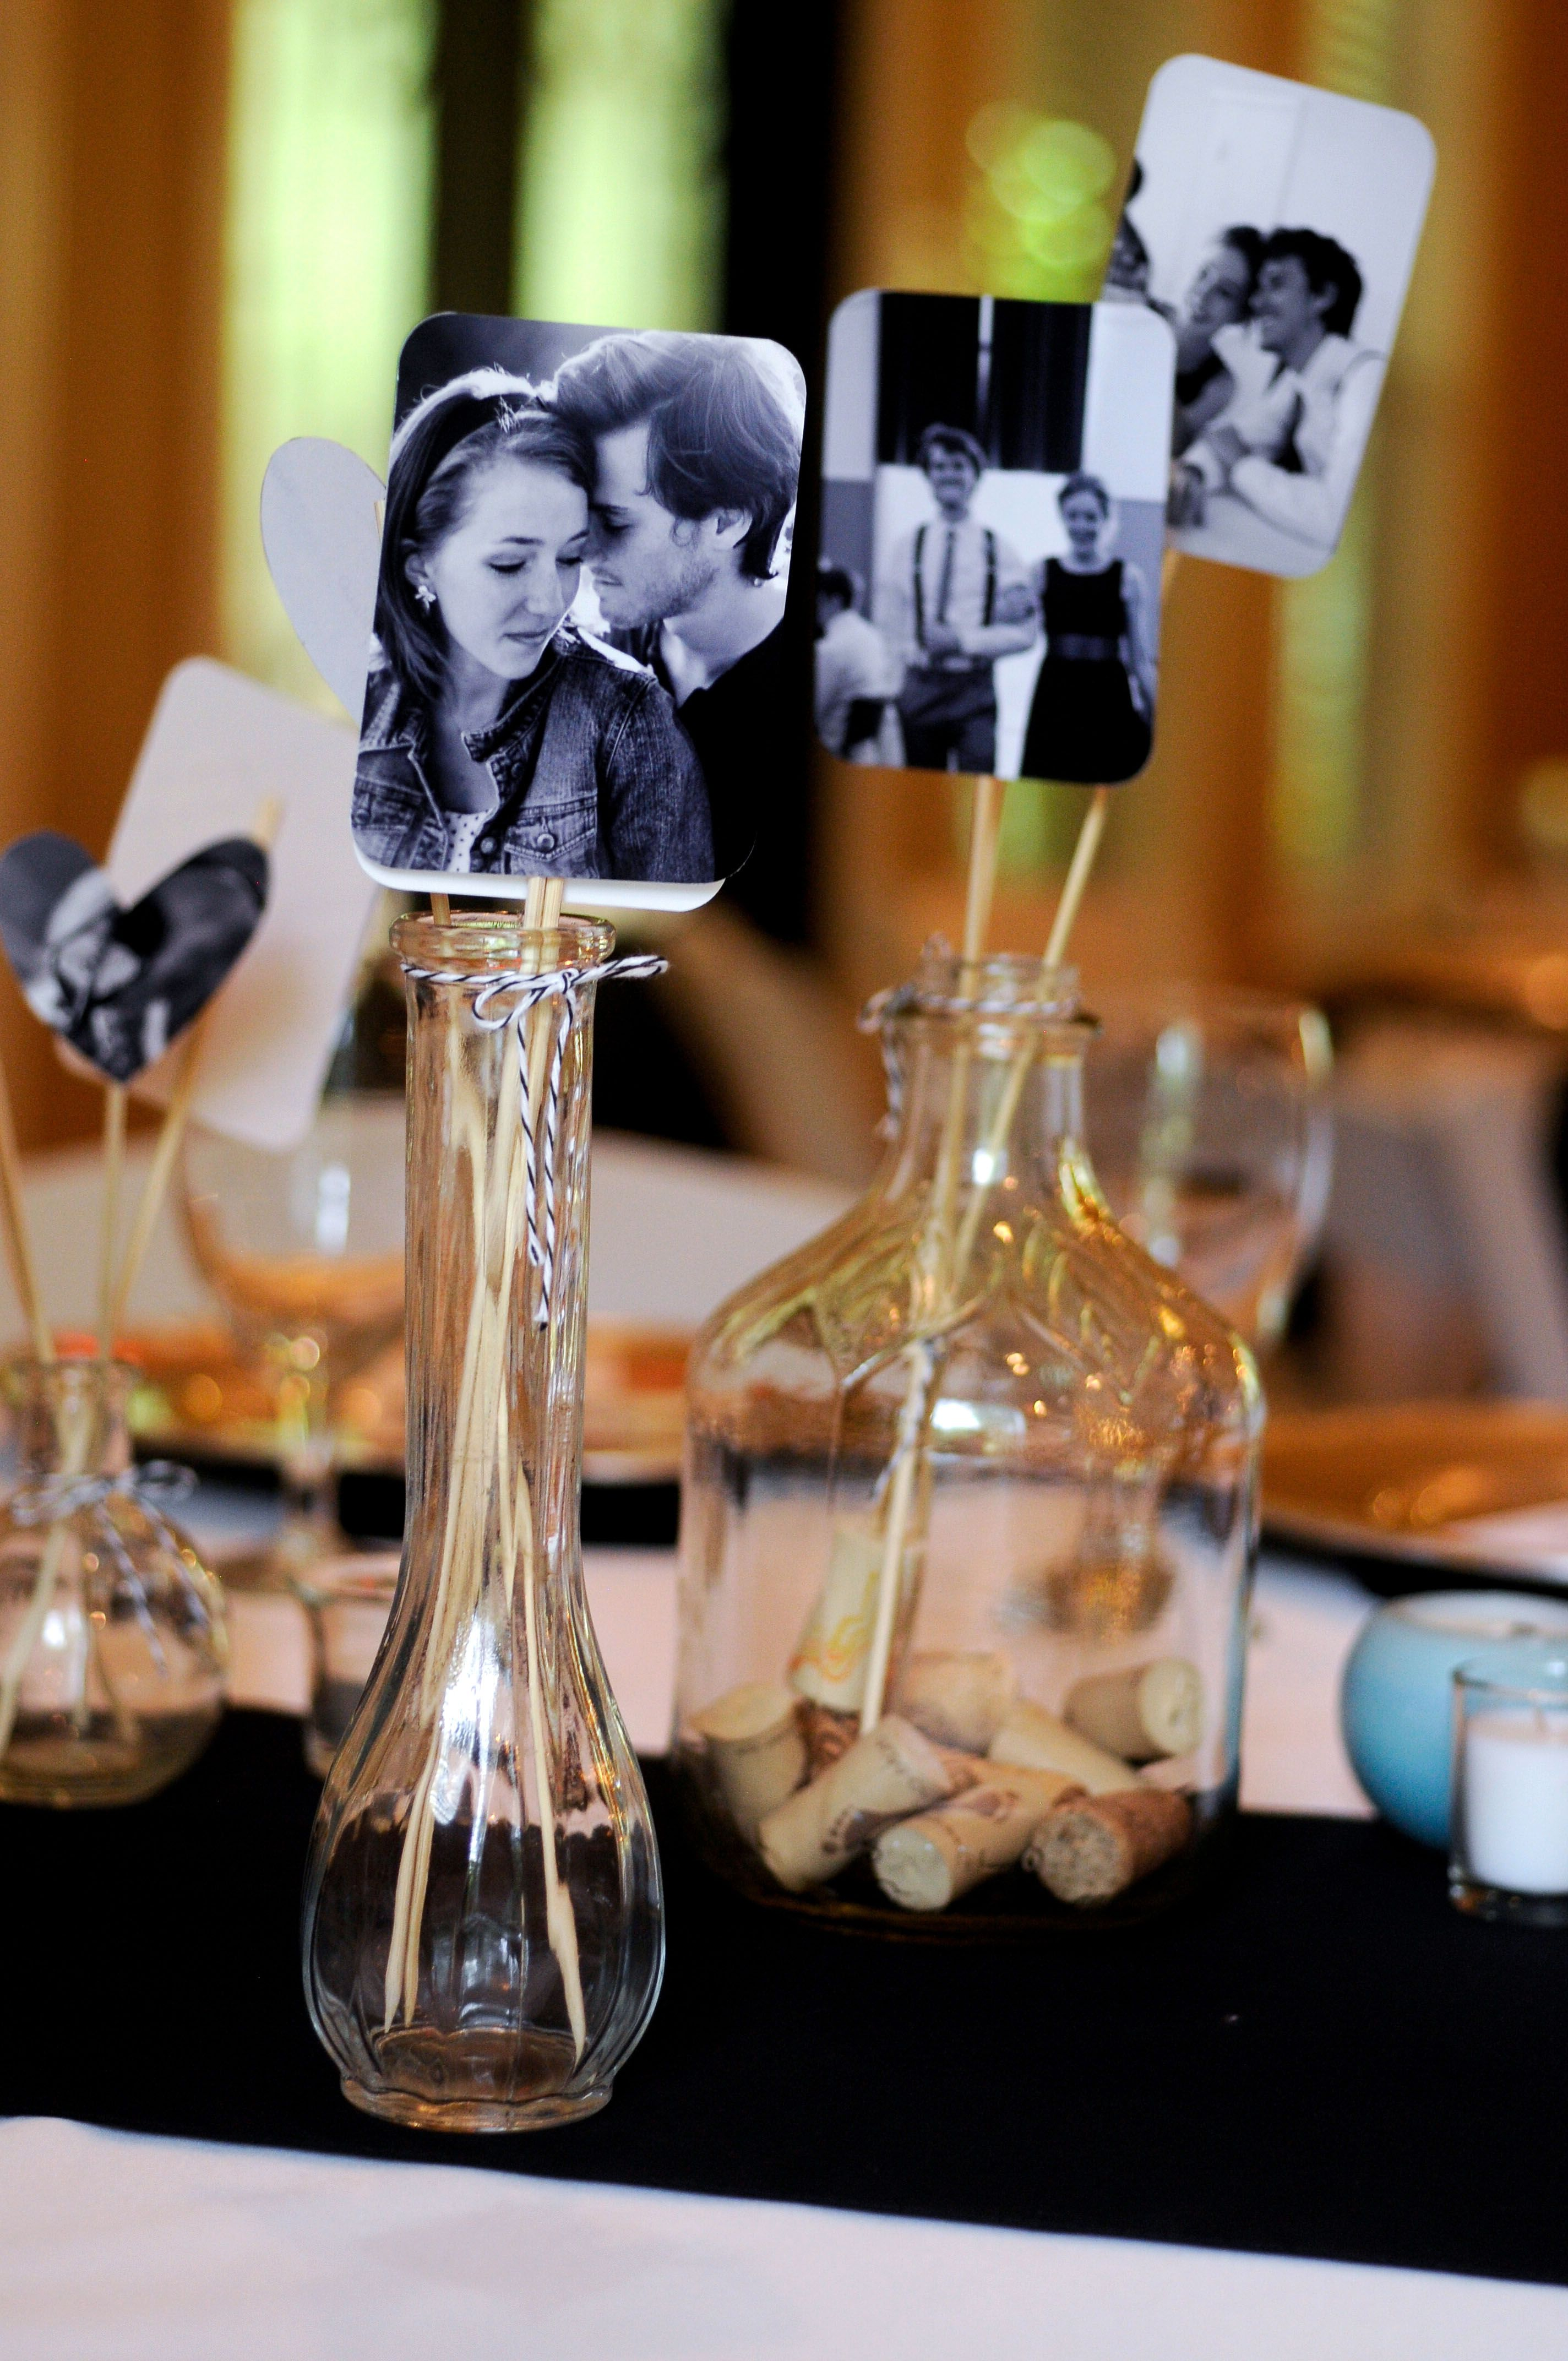 Wedding centerpieces pictures in vases diyfrench themed wedding wedding centerpieces pictures in vases diyfrench themed wedding in small town texas reviewsmspy